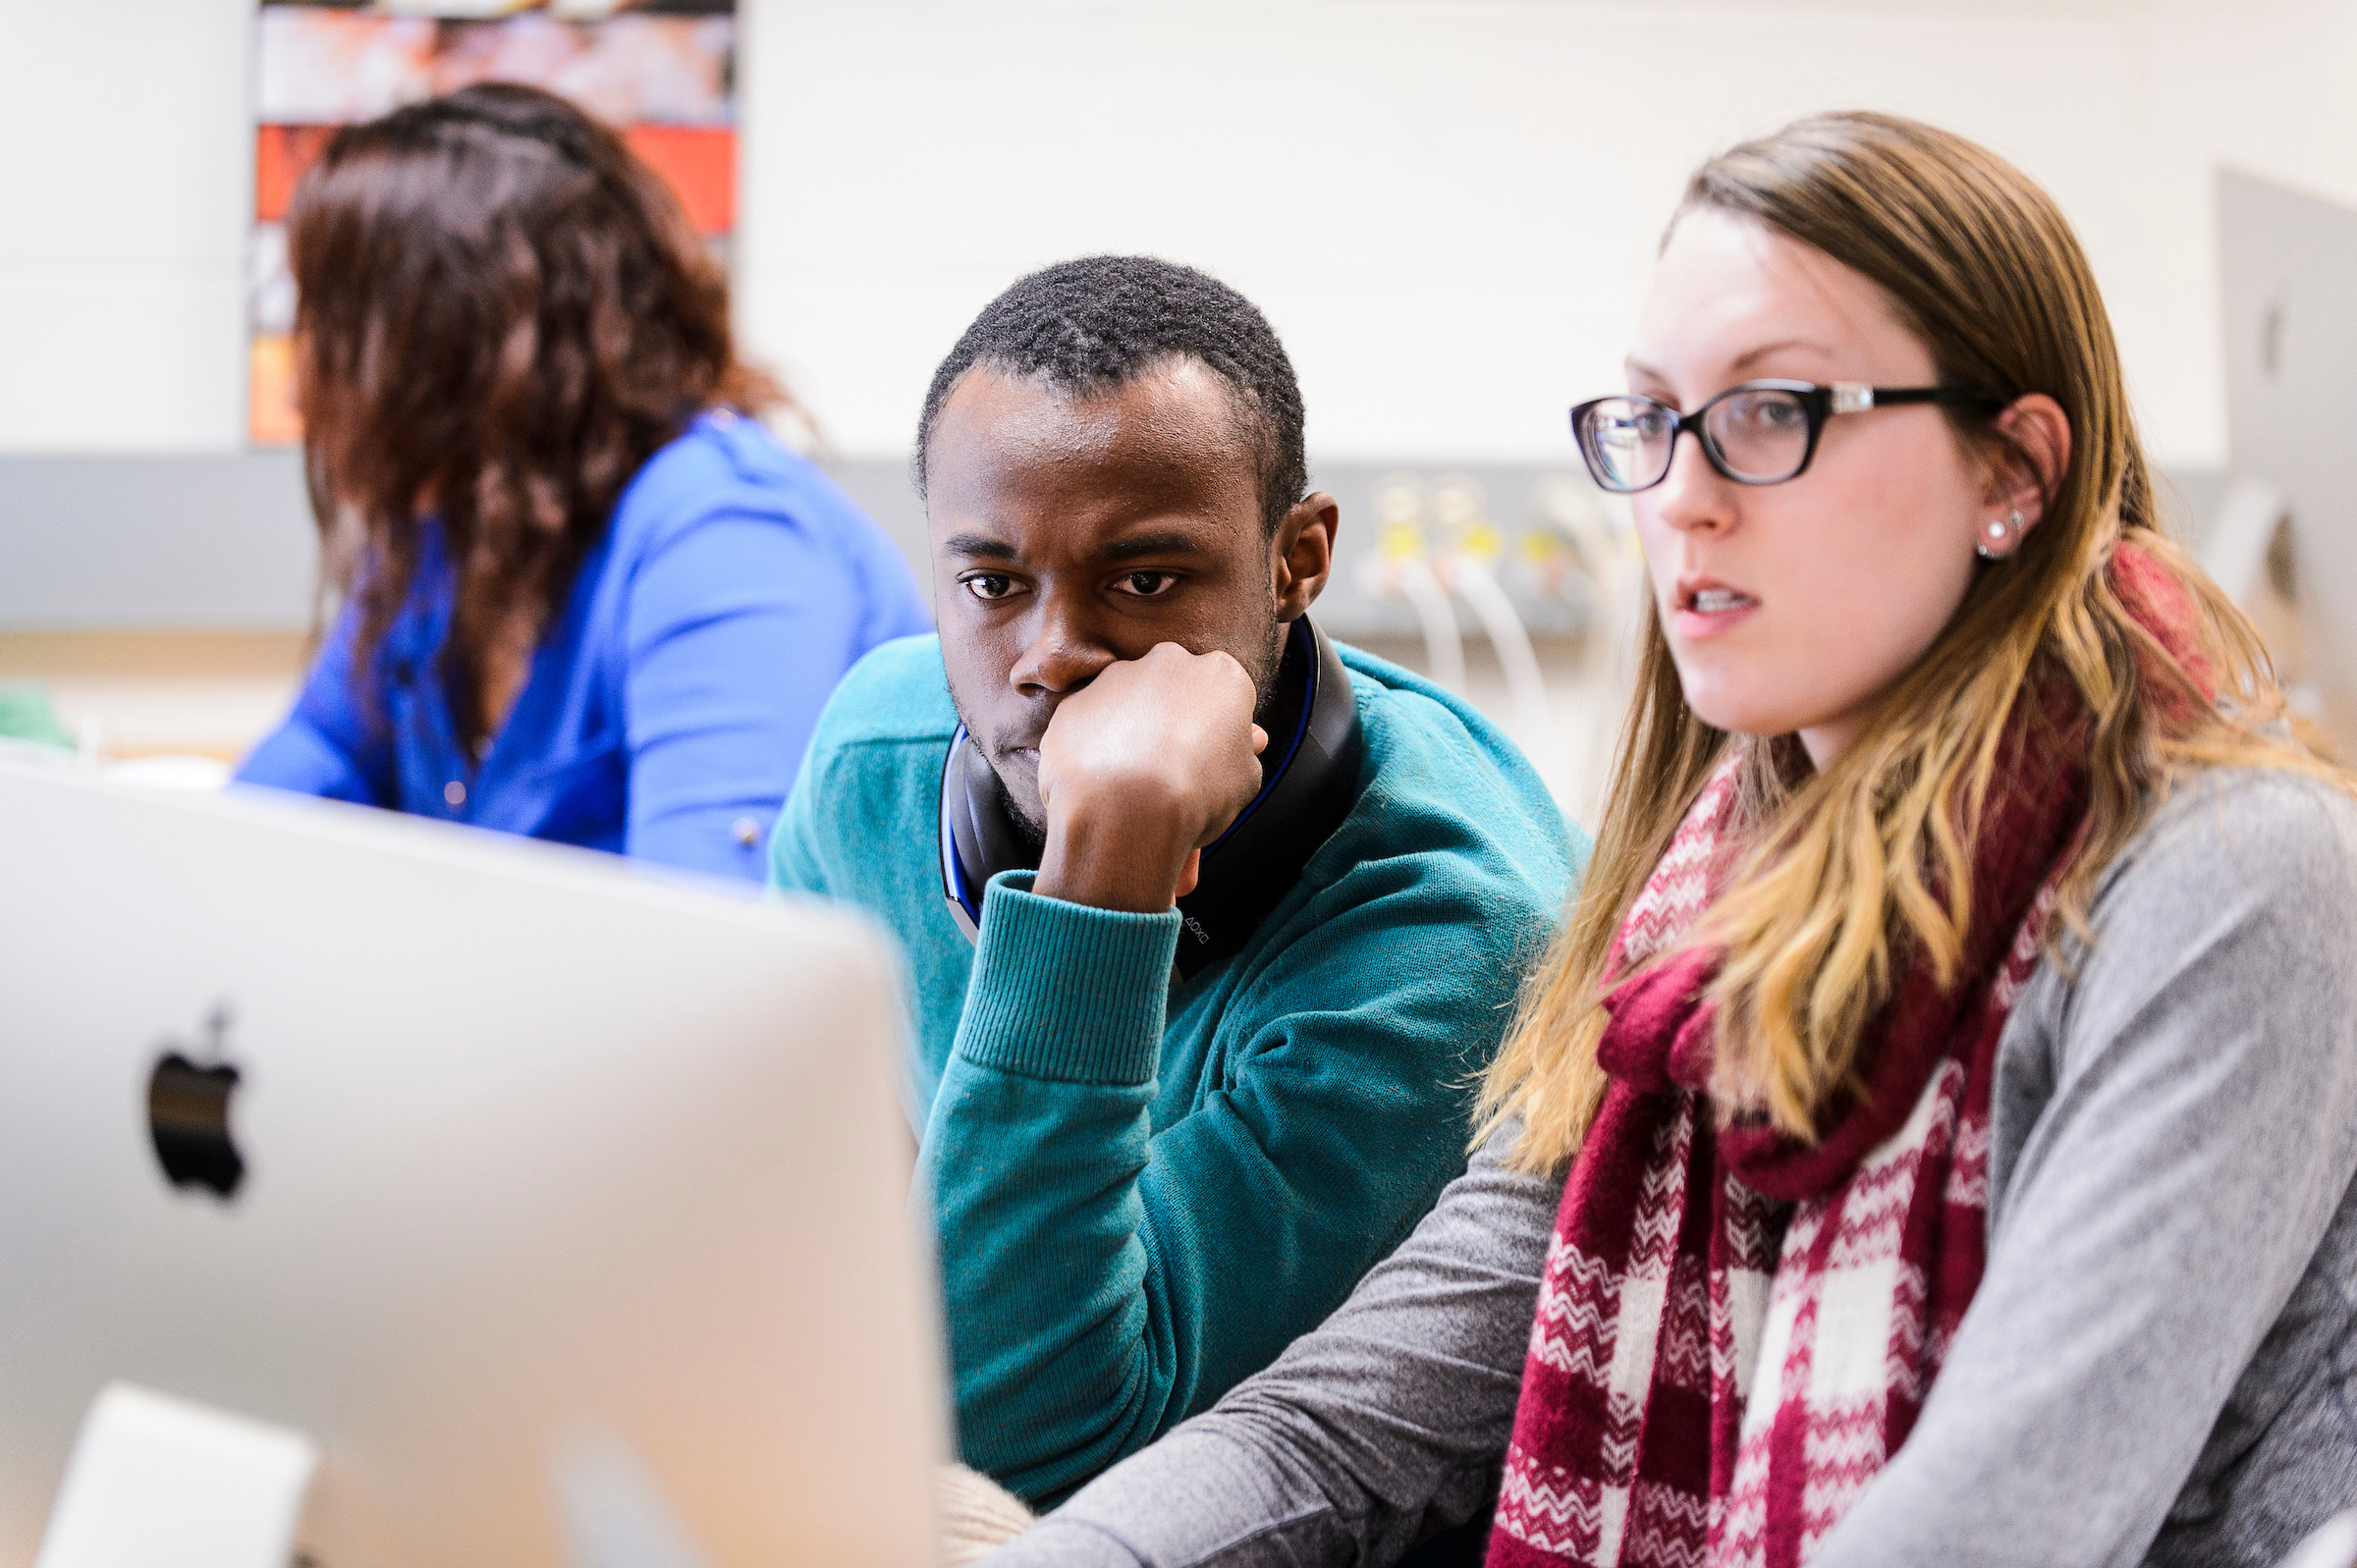 Undergraduate students Dirk Spencer and Keighley Reisenauer work on a project in a computer lab as part of a Genomics and Proteomics class taught by Ahna Skop, associate professor of genetics and life sciences communication, in the Animal Sciences Building at the University of Wisconsin-Madison on Feb. 11, 2016. Skop is one of twelve 2016 Distinguished Teaching Award recipients. (Photo by Jeff Miller/UW-Madison)